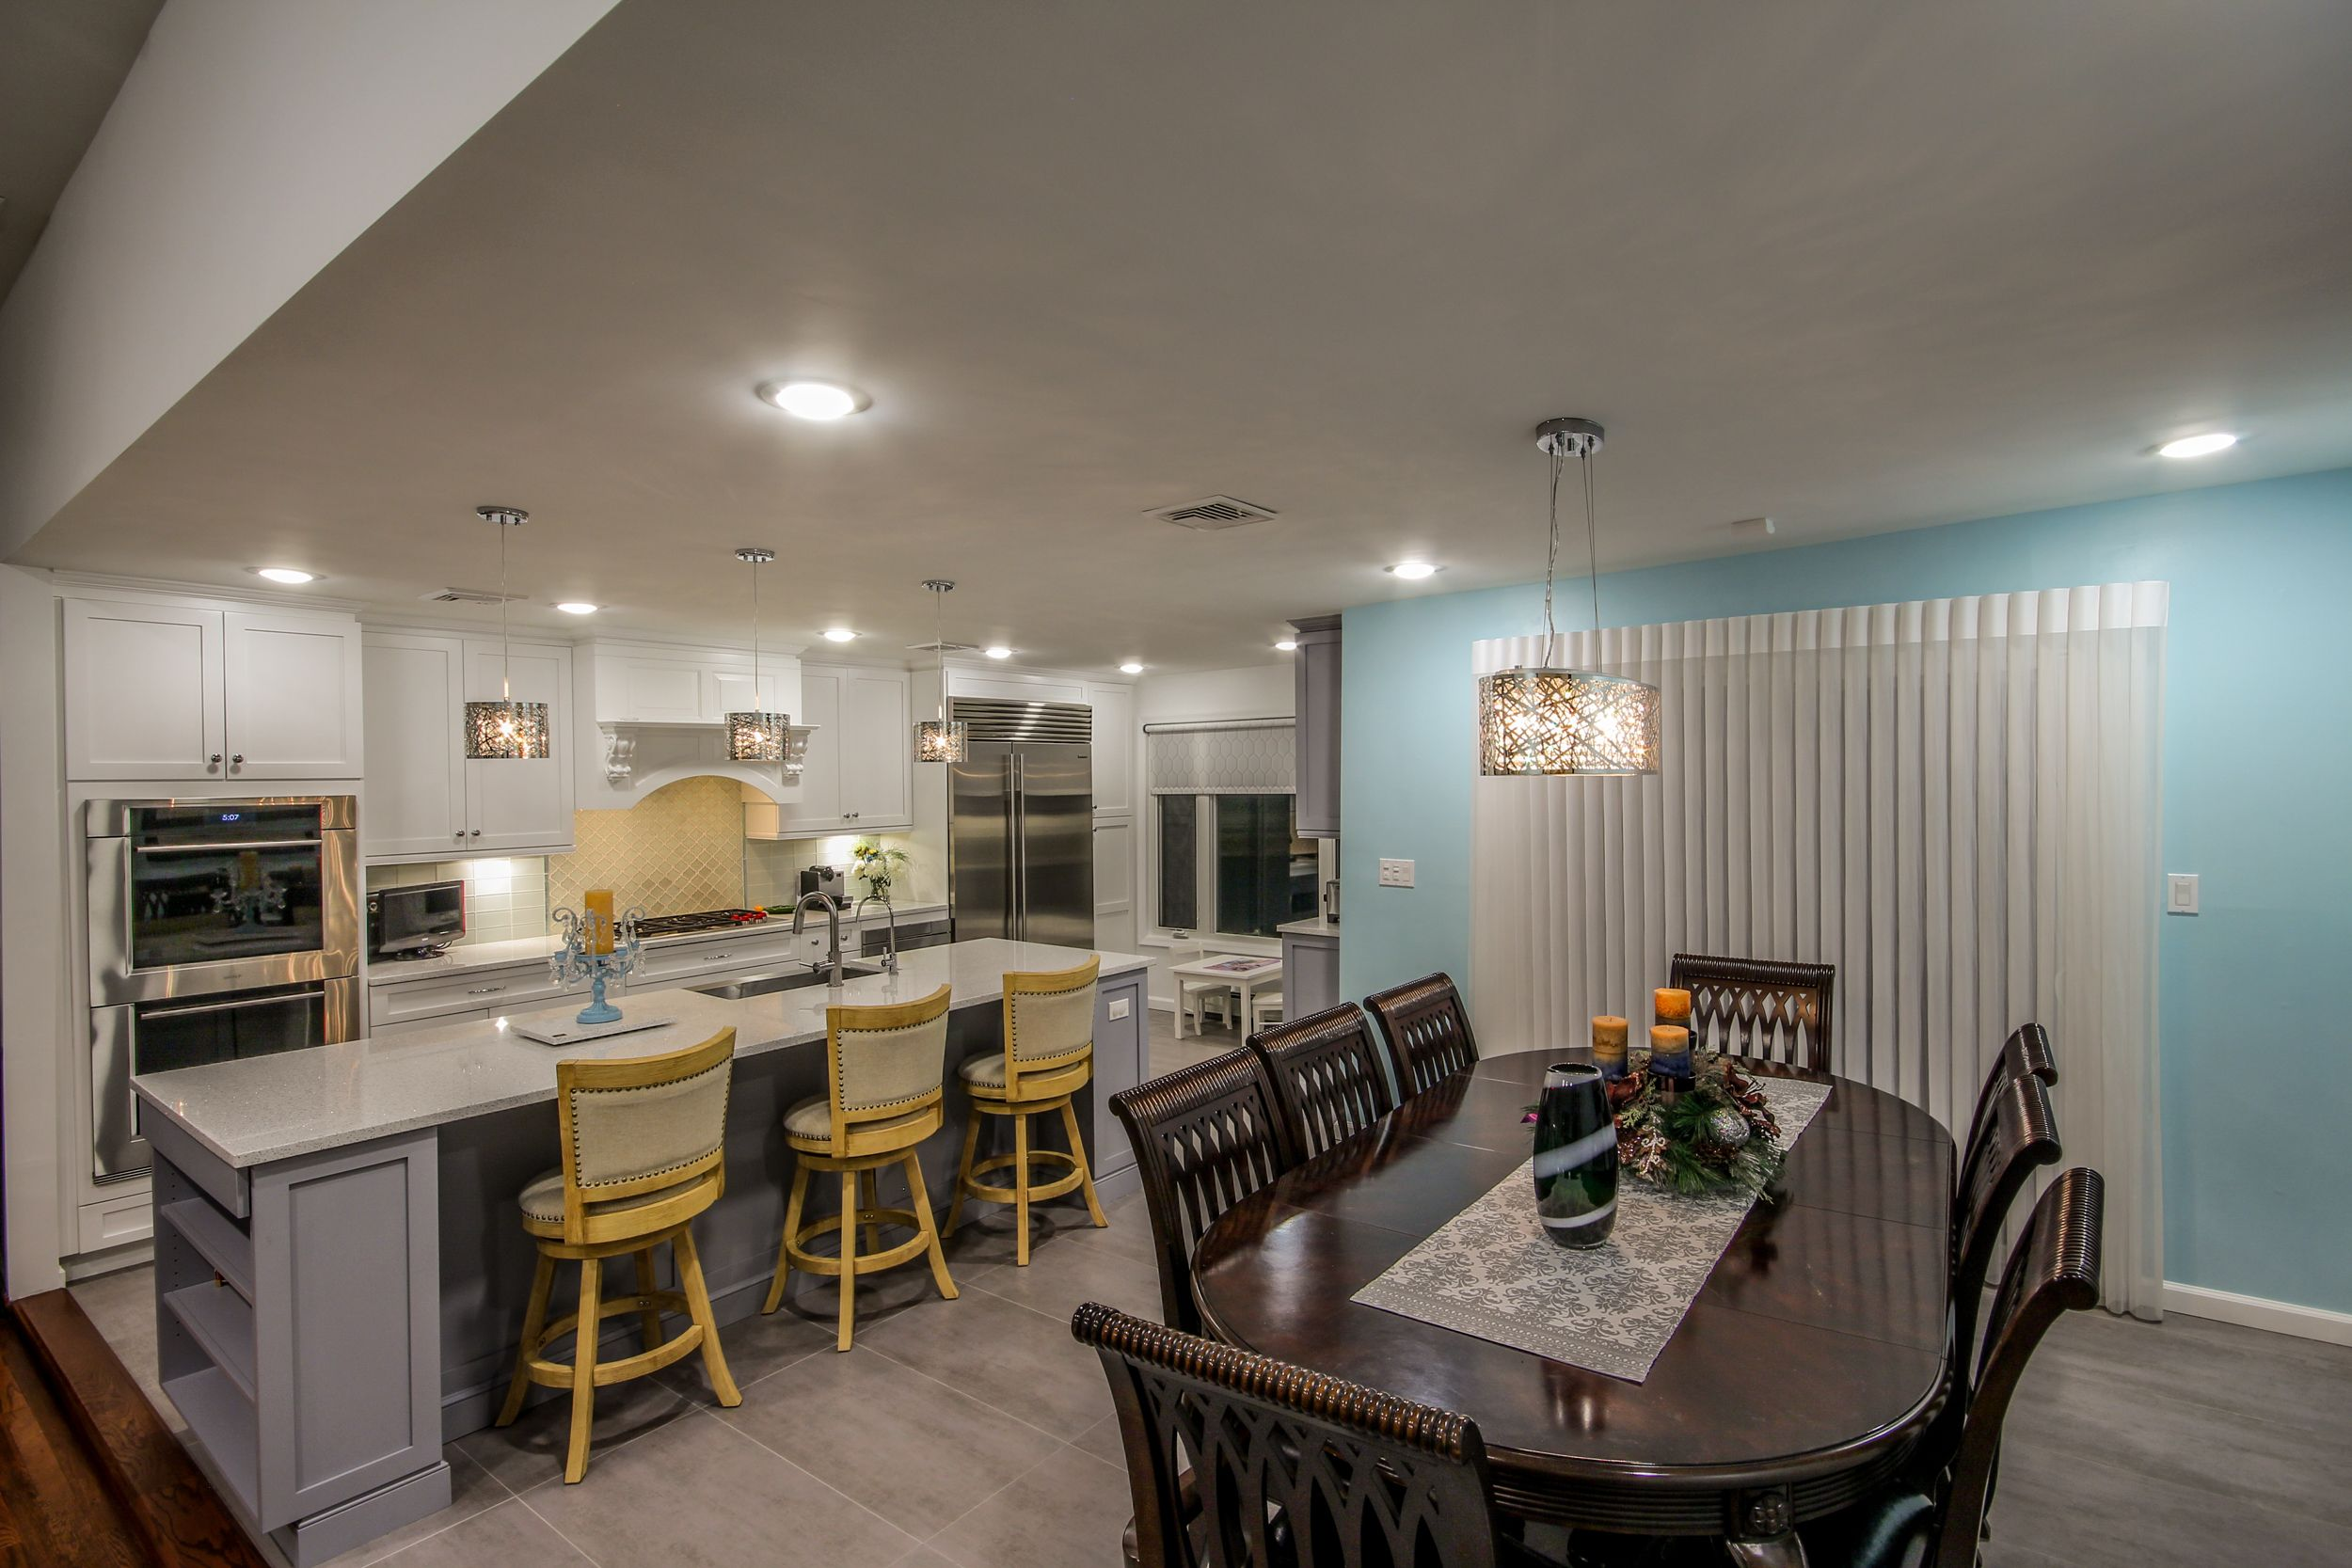 The previously formal dining room is now open and accessible but still maintains a sophistication complete with lighting that is independent, dim-able, and higher end complimented with matching pendants over the island.